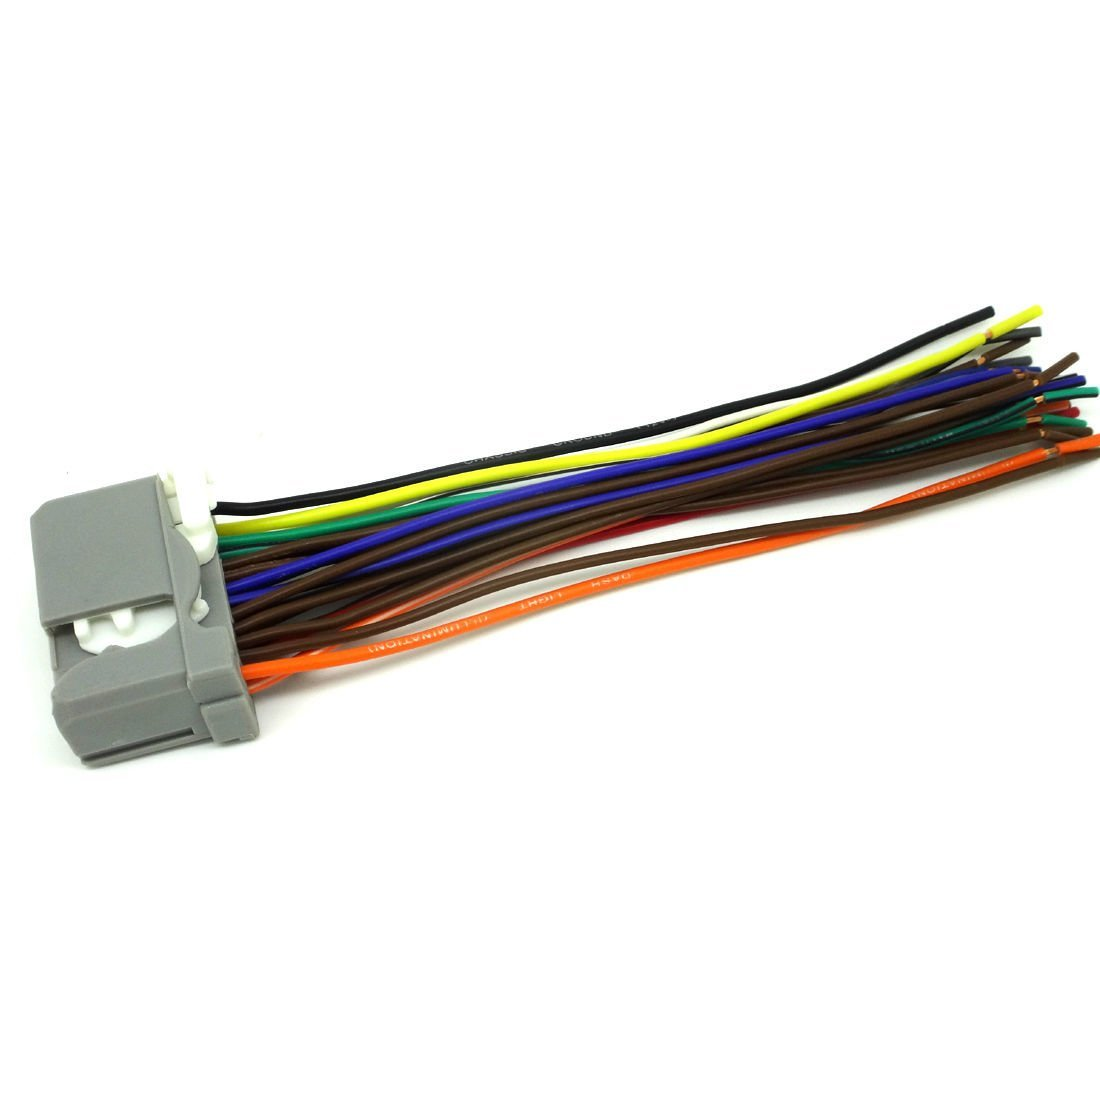 Scosche Radio Wiring Harness Get Free Image About Wiring Diagram